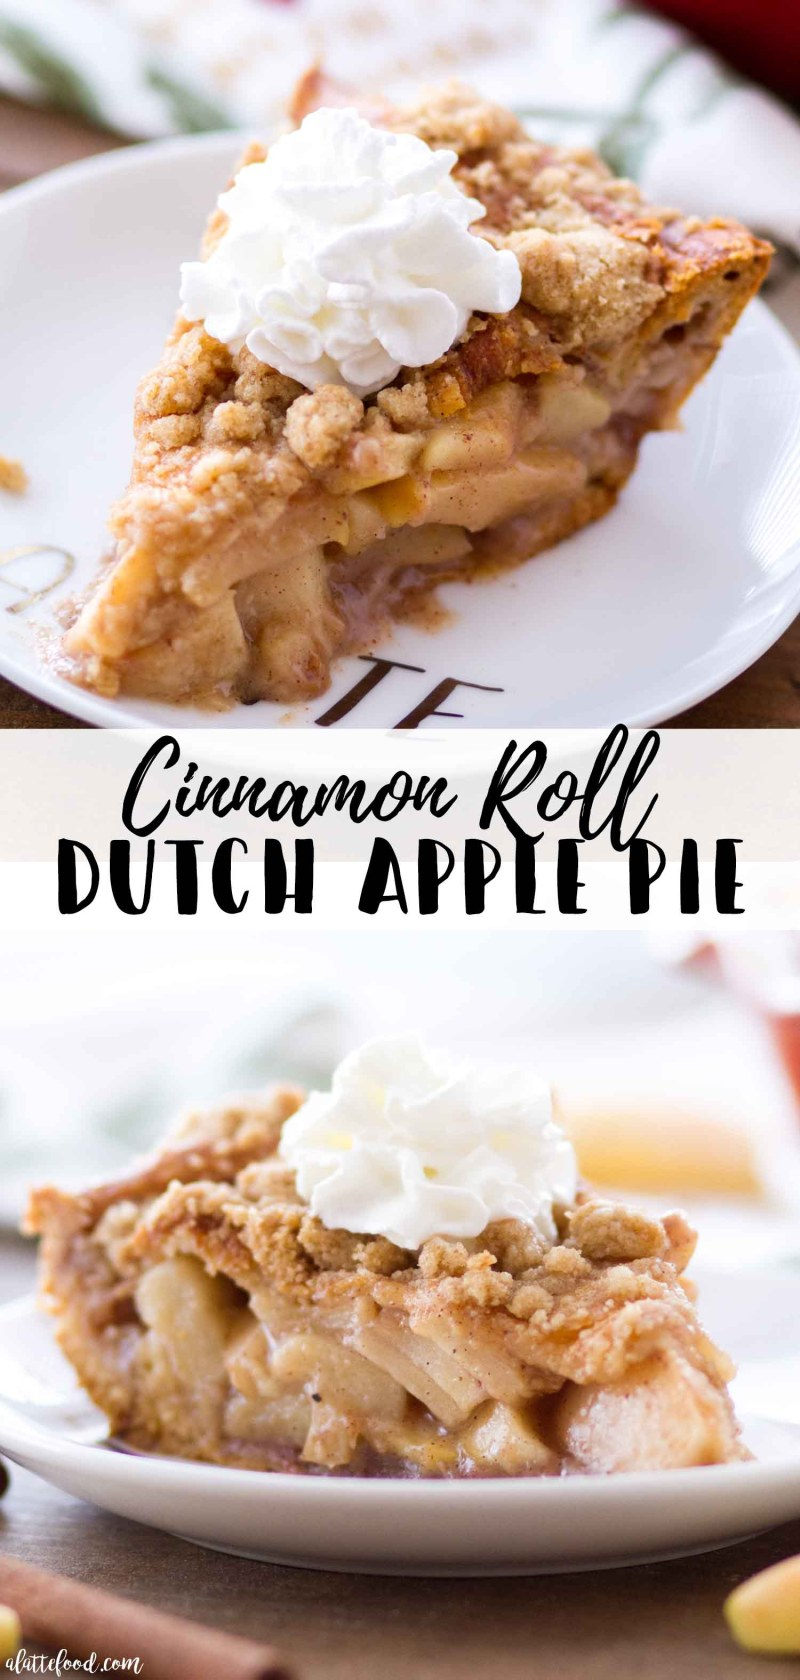 Homemade Cinnamon Roll Dutch Apple Pie (a cinnamon roll crust with homemade apple pie filling).